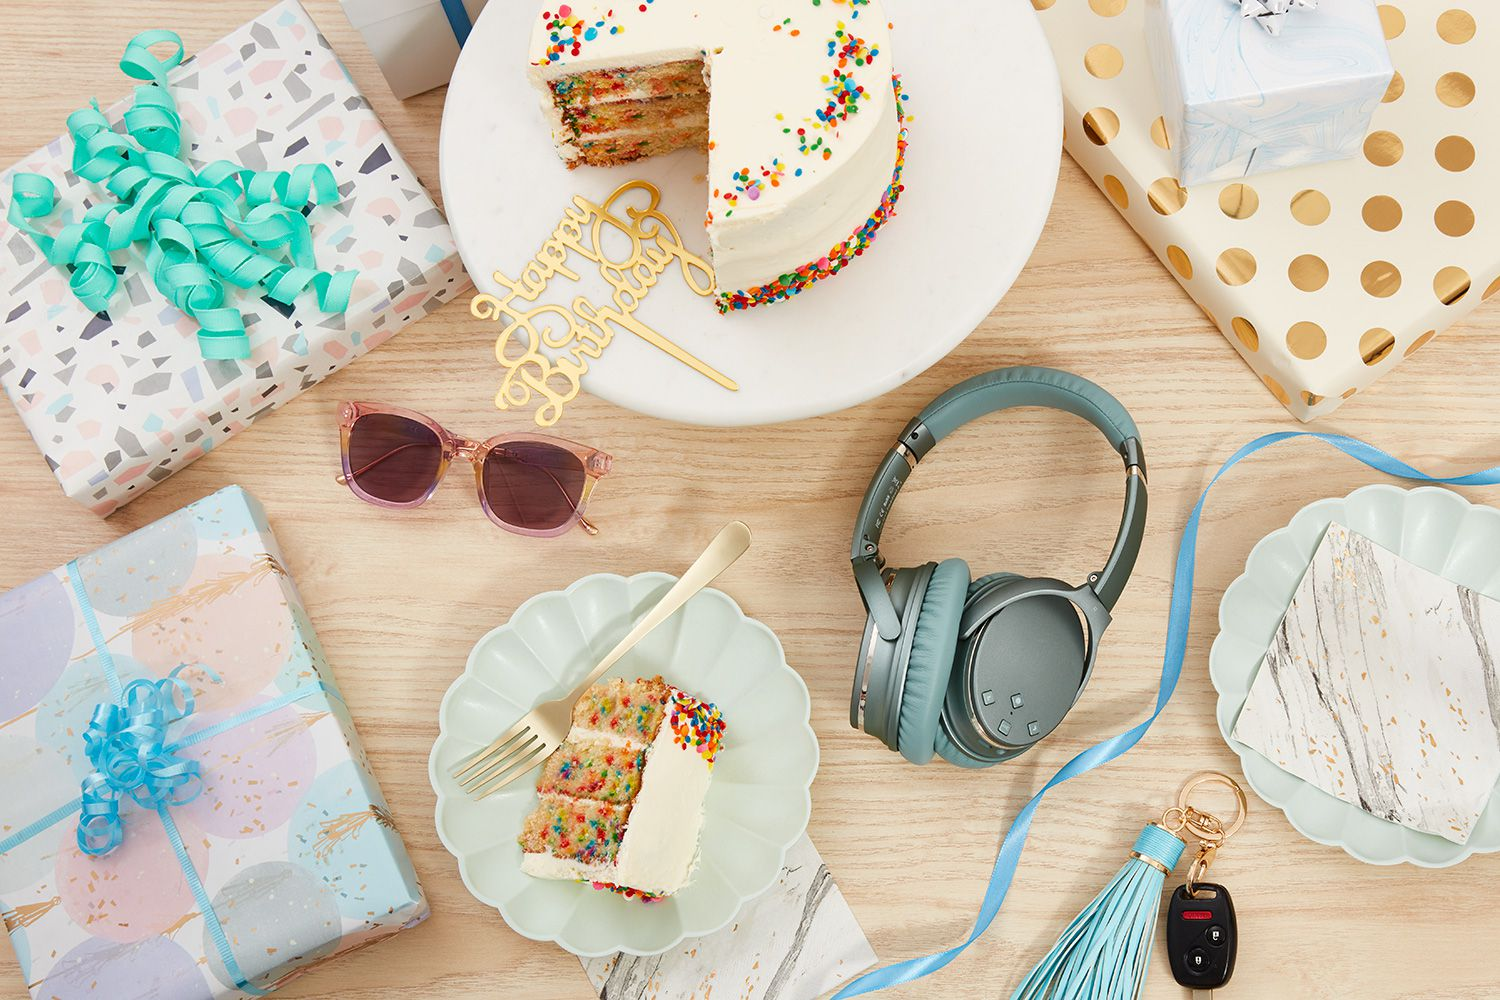 20 Awesome Ideas For 16th Birthday Gifts